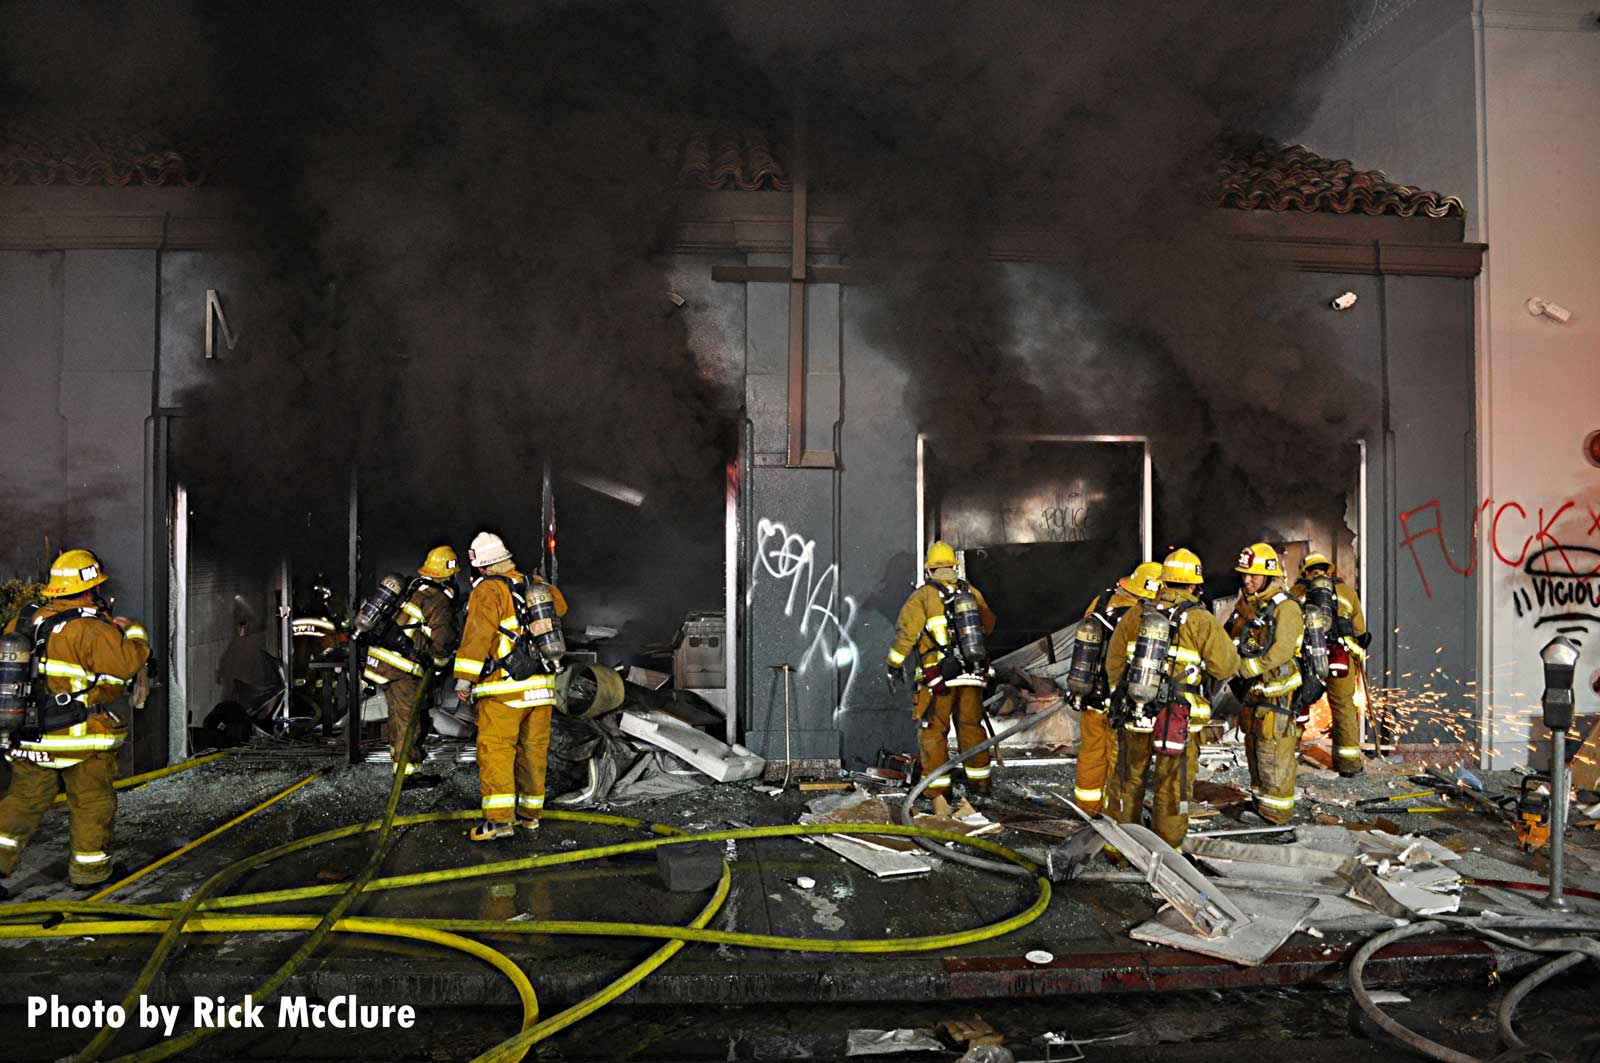 Smoke pours from building as LAFD firefighters battle structure fire